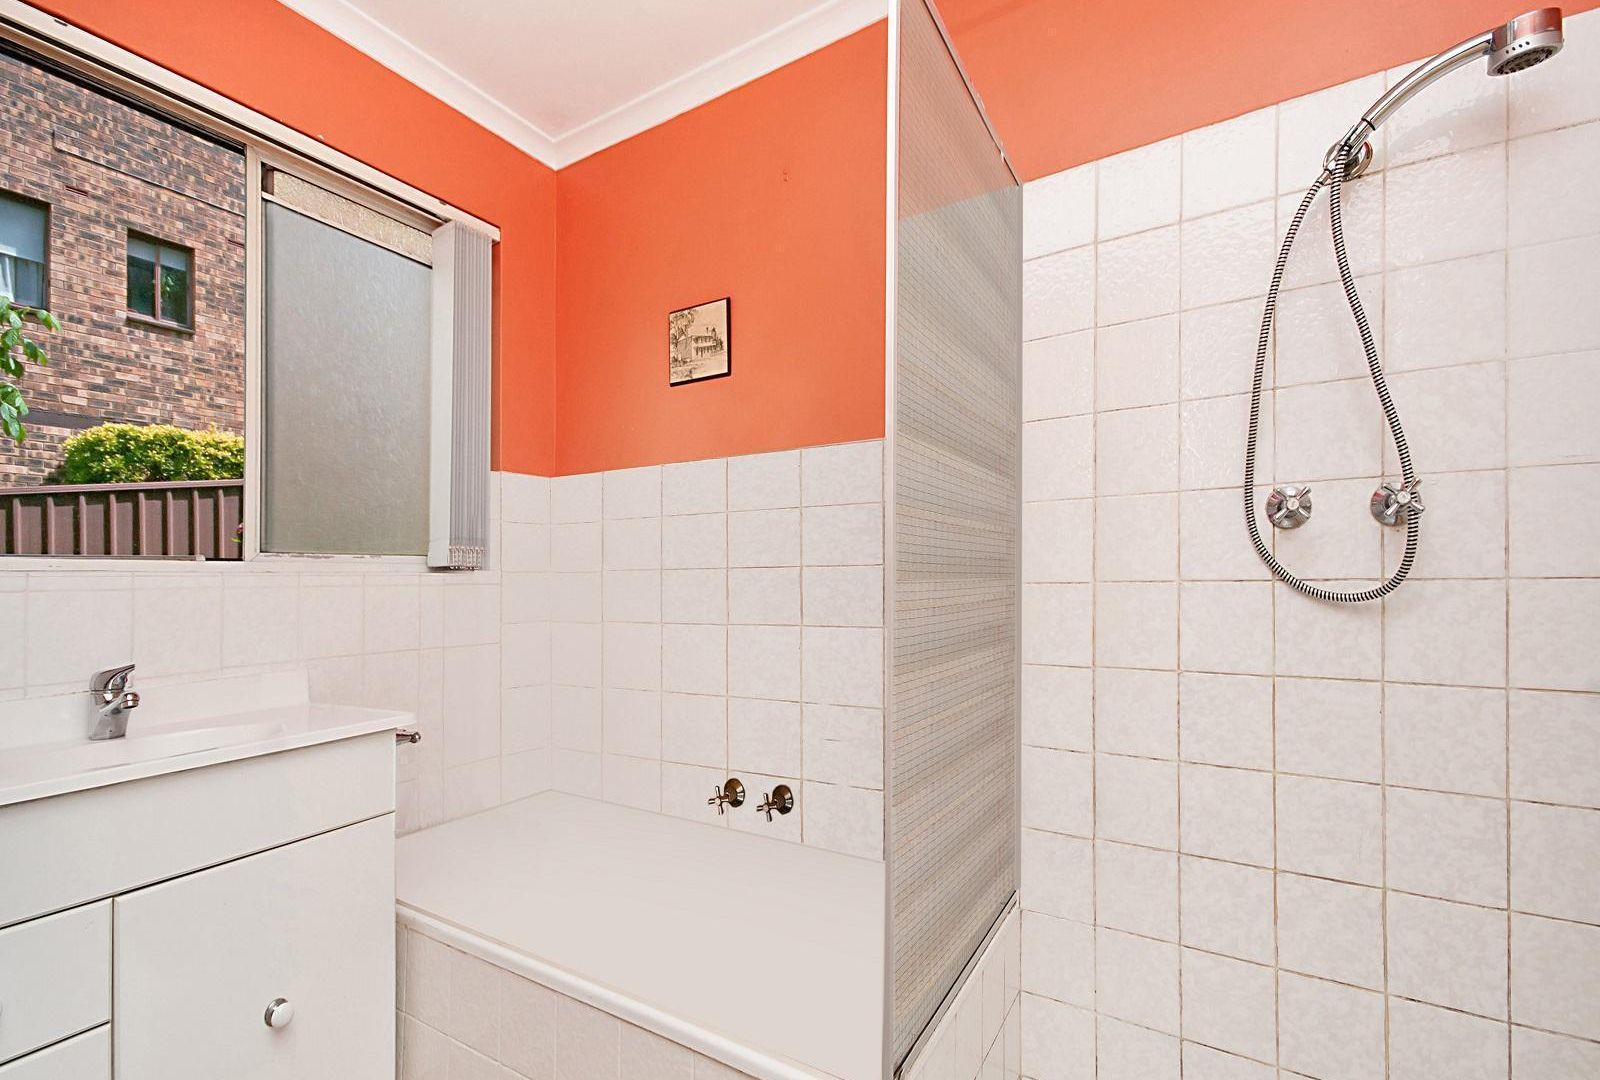 17/23 William Street, Hornsby NSW 2077, Image 3